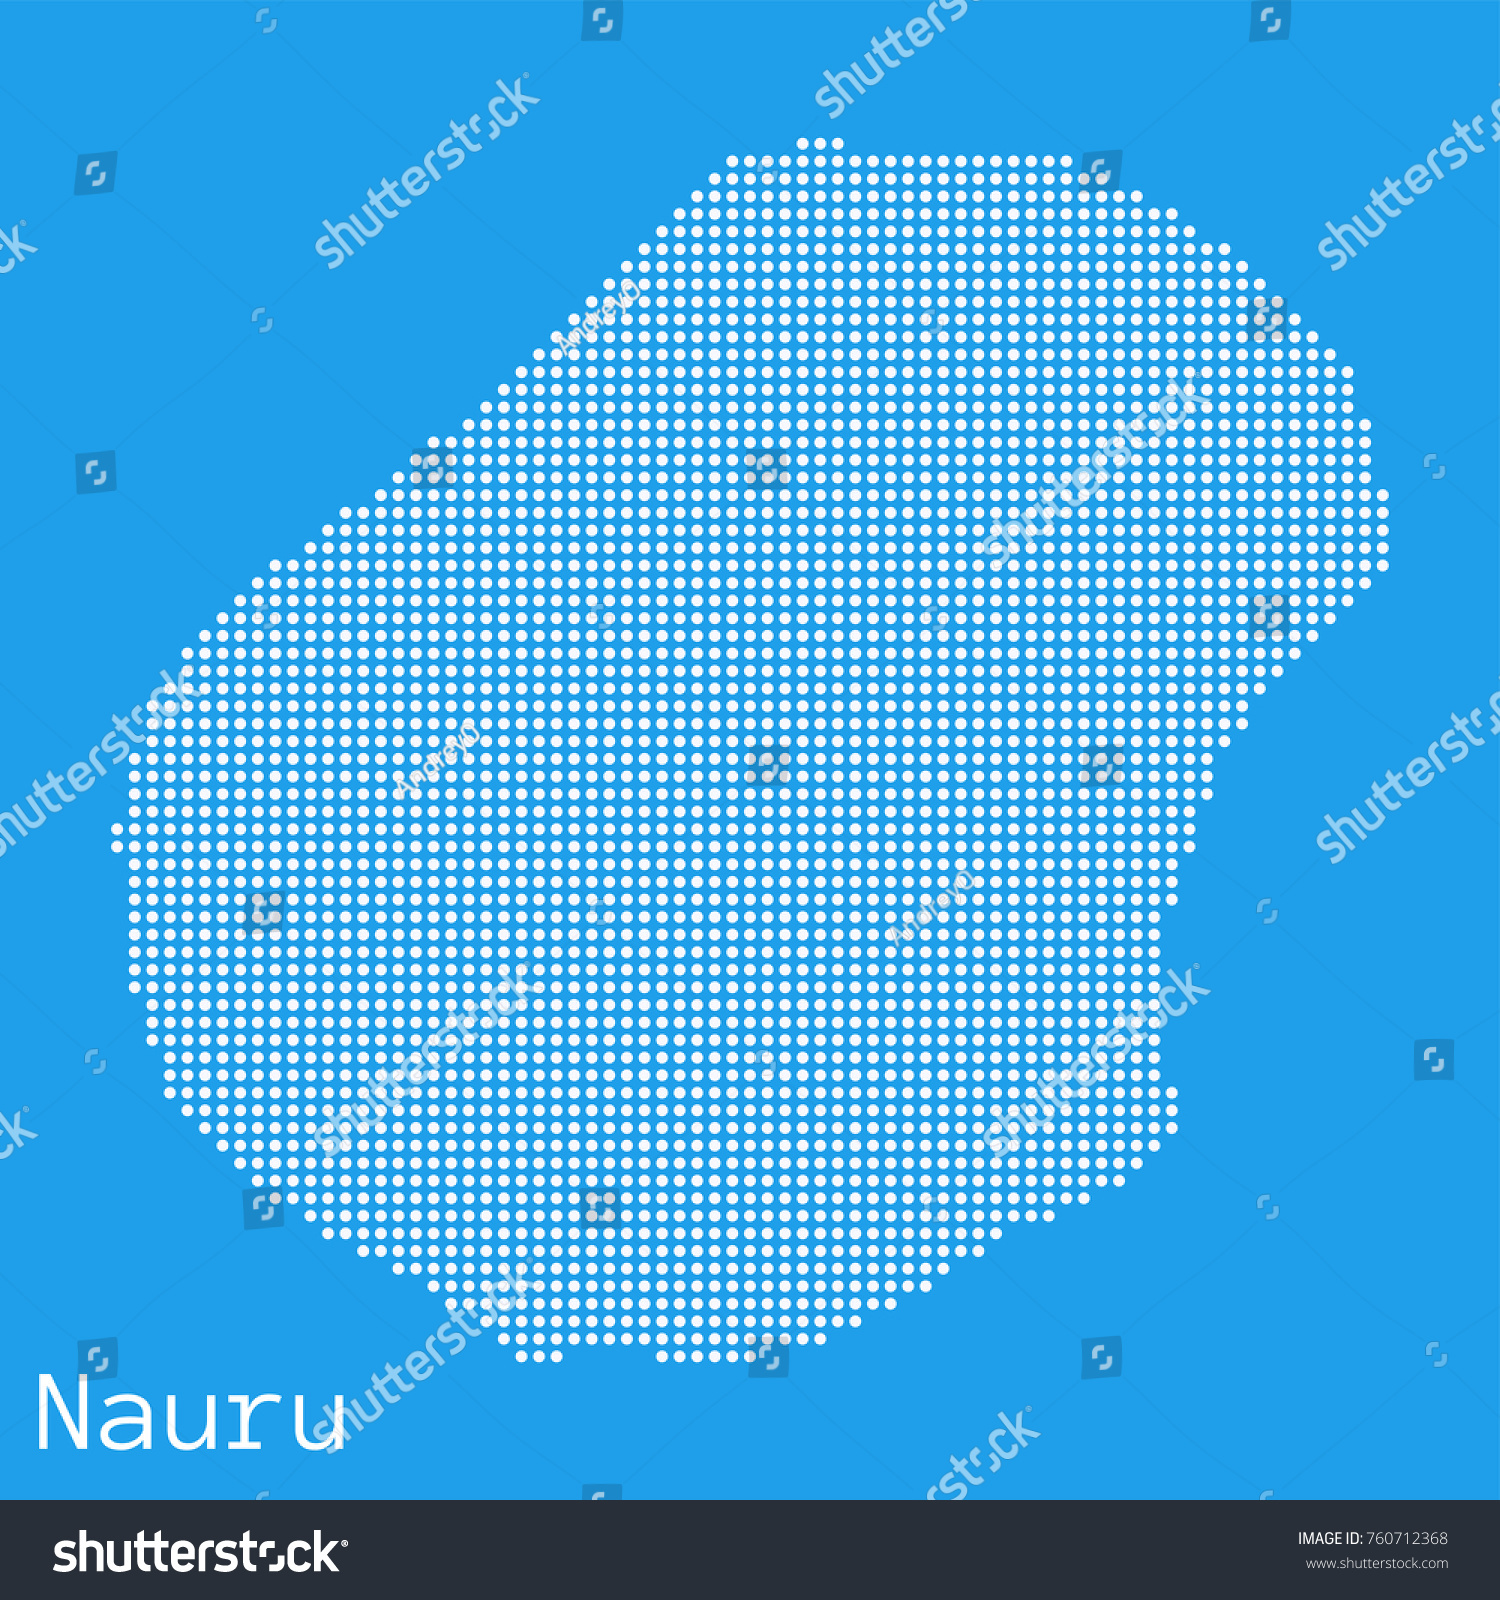 Vector Nauru Map Silhouette Dotted On Stock Vector - Nauru map vector